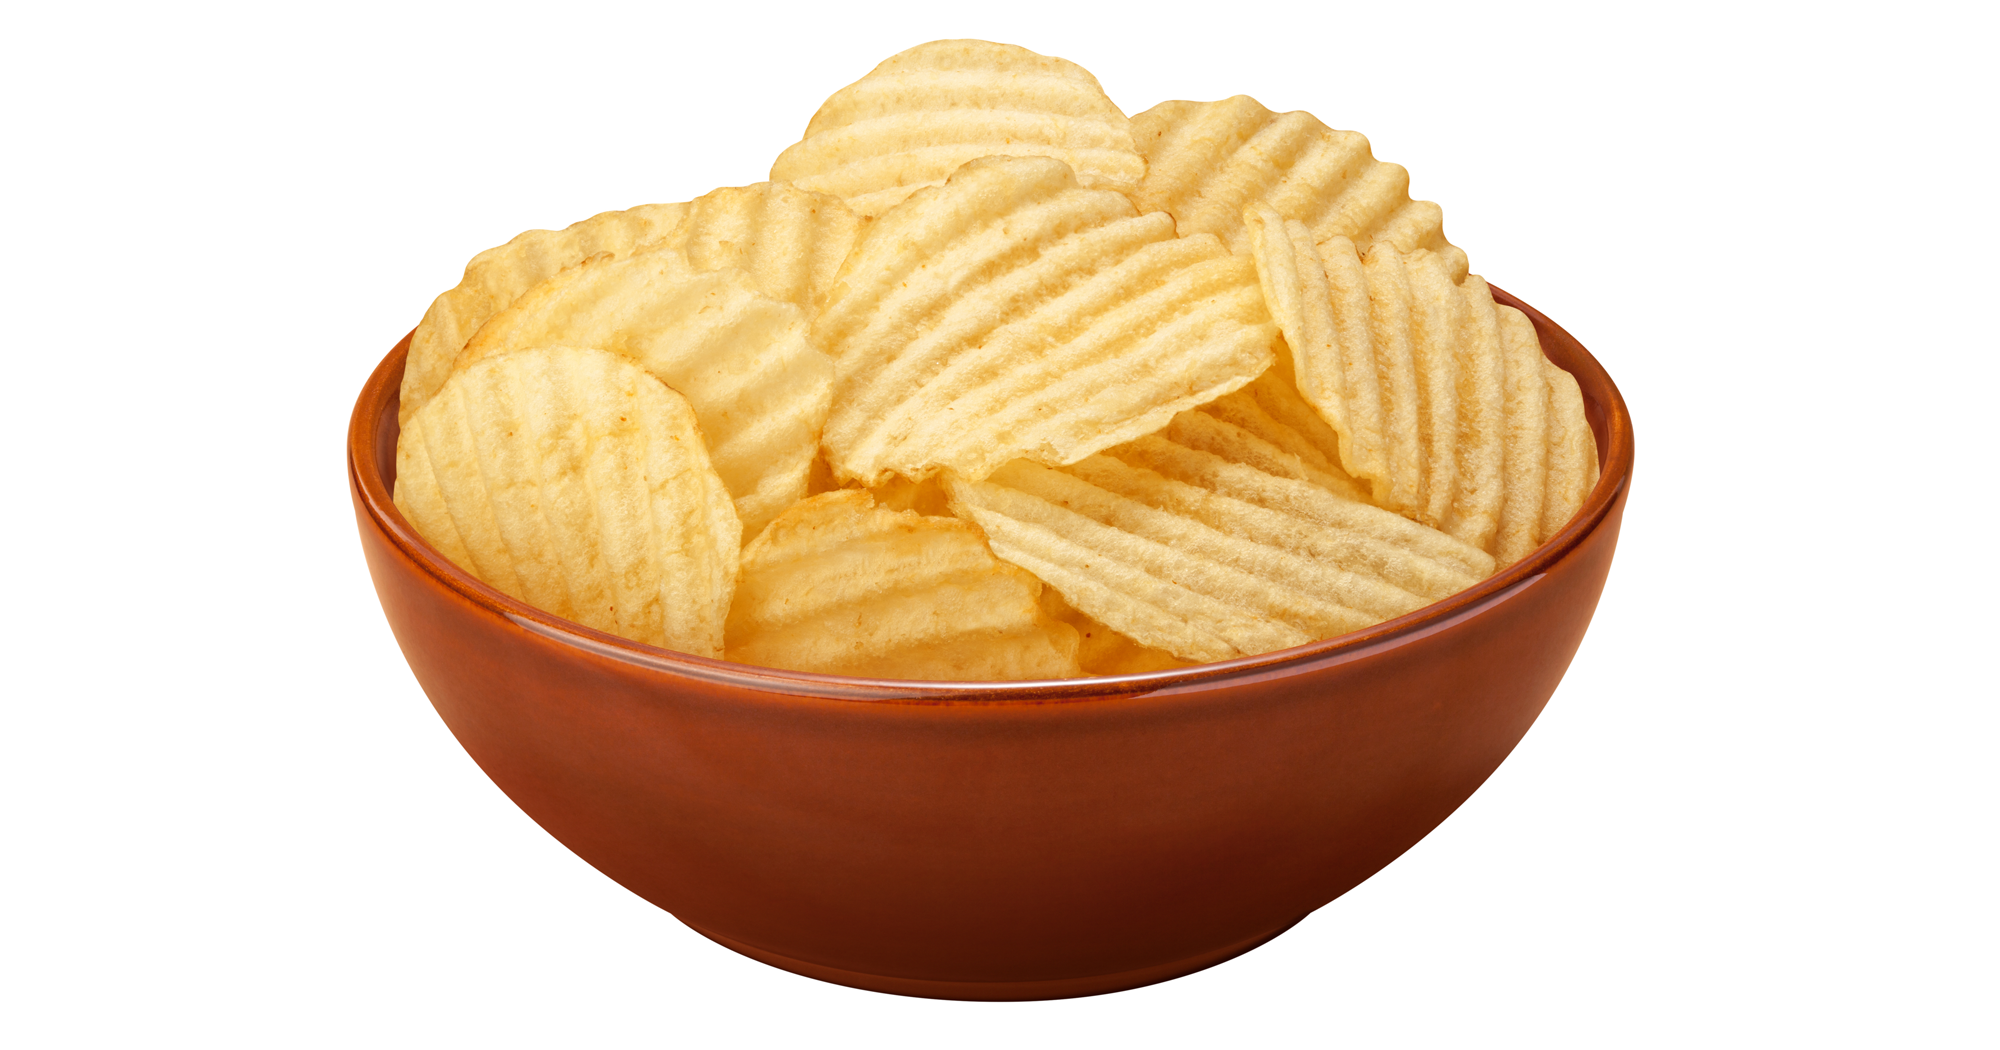 Food - Chips Potato Chips Snack Wallpaper - Potato Chips PNG HD